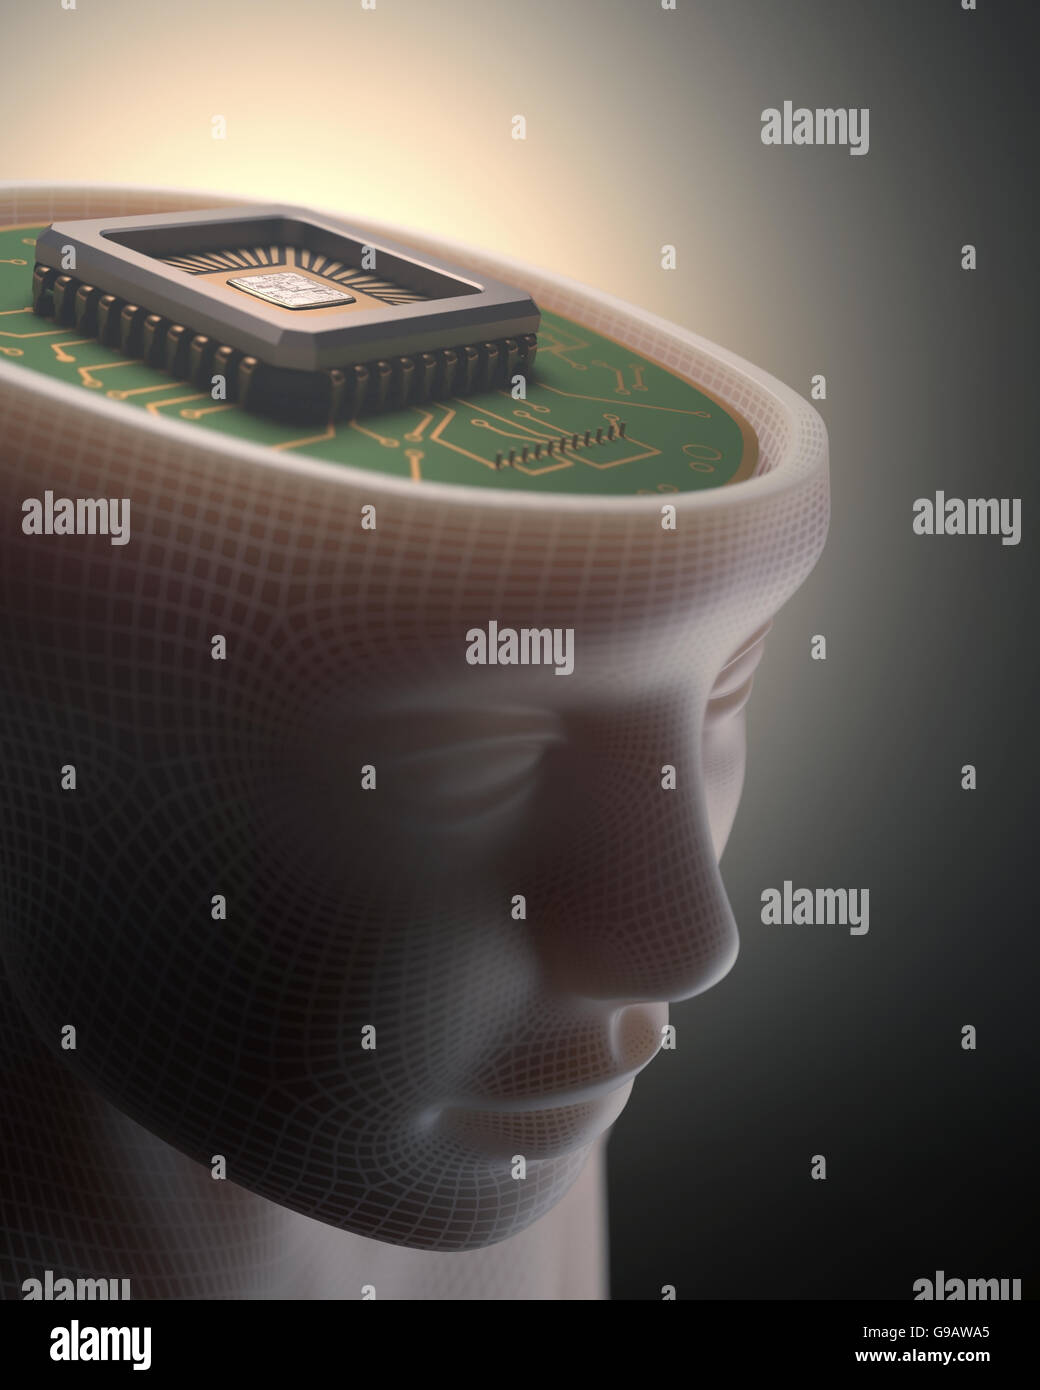 Microchip in place of the human brain. Concept of science and technology. - Stock Image